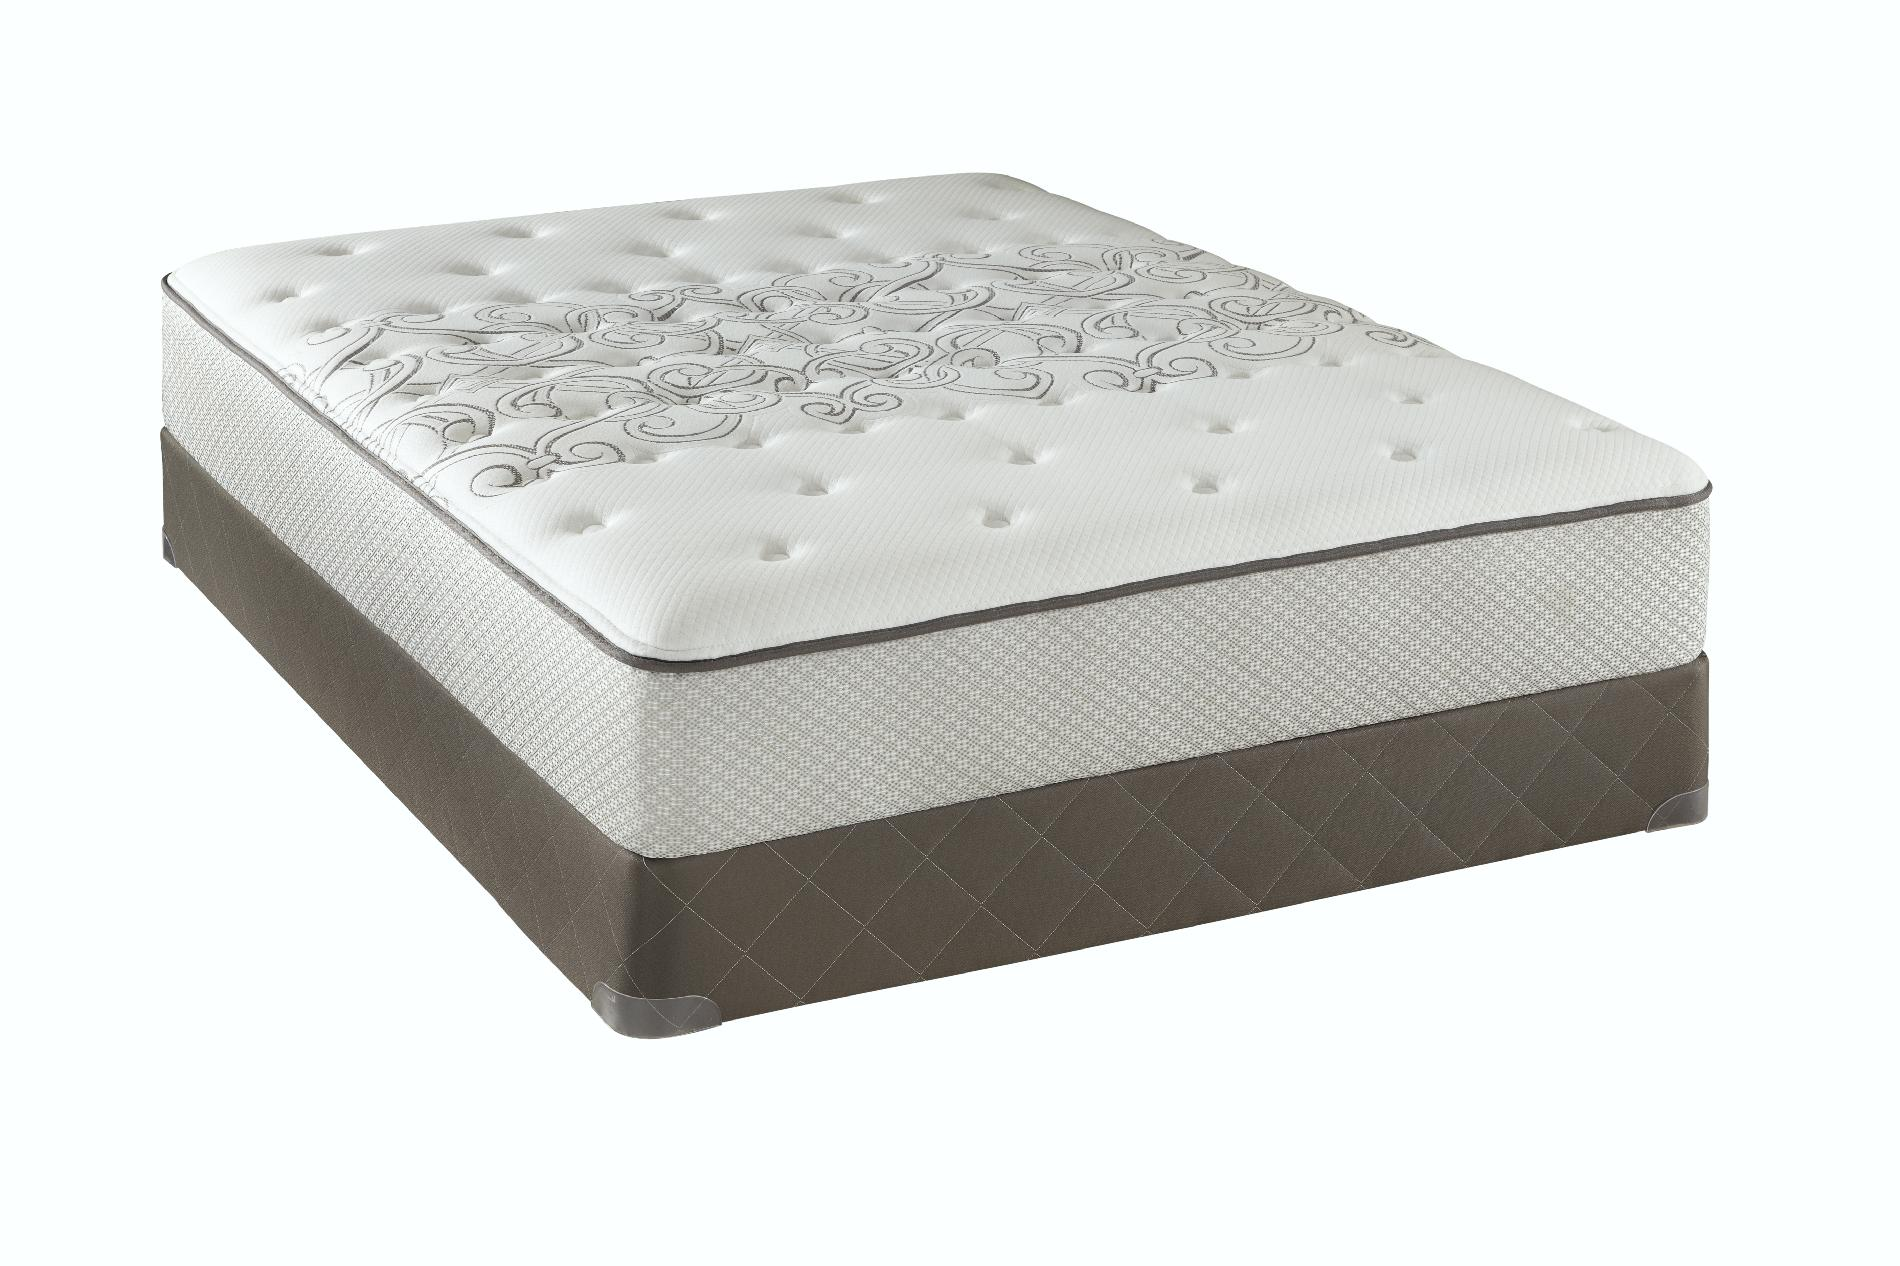 Sealy Posturepedic Cookshire Ti2, Firm, Twin Mattress Only